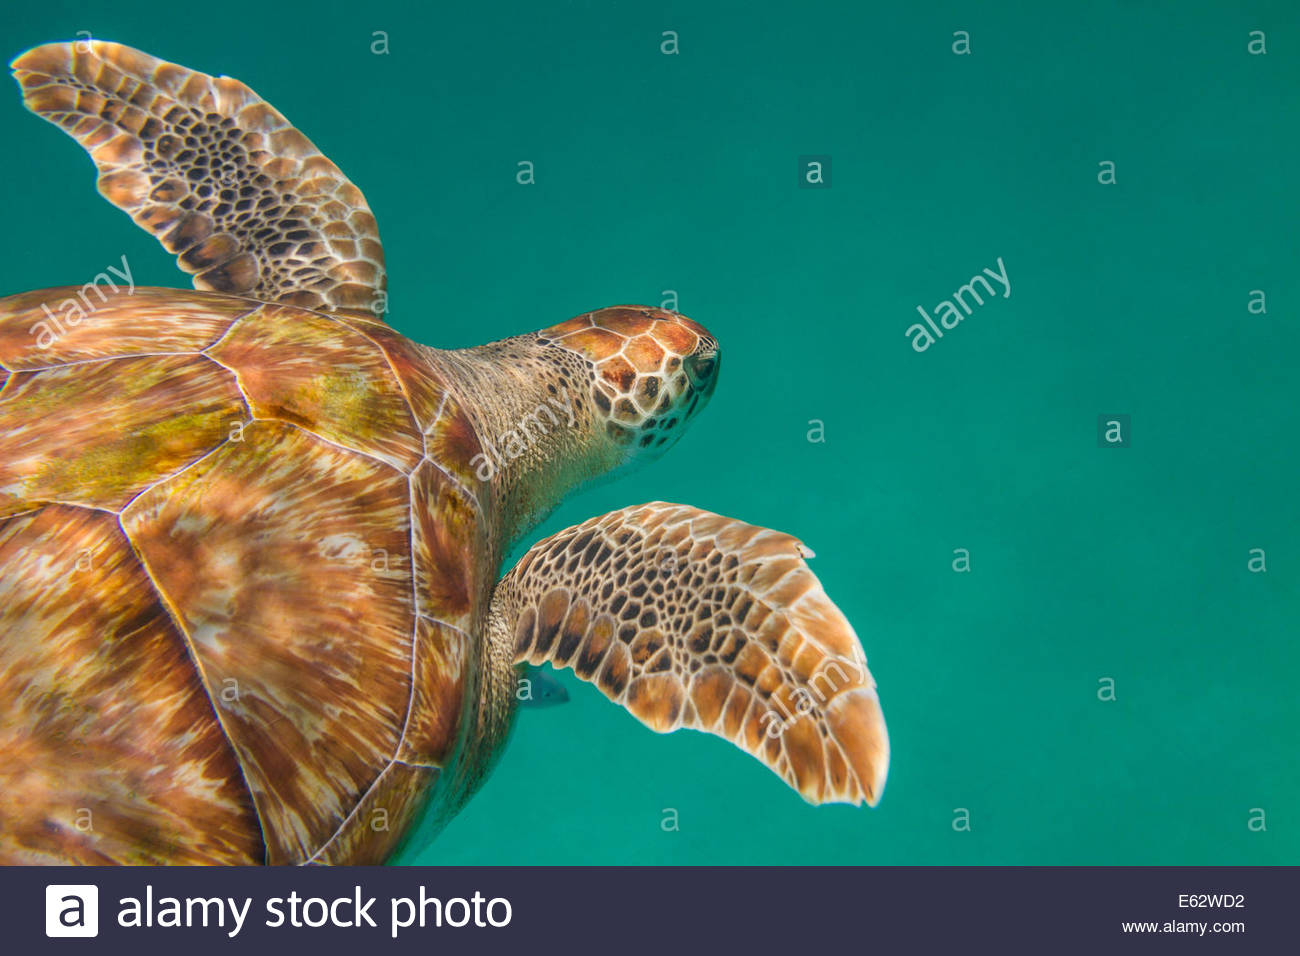 A hawksbill sea turtle (Eretmochelys imbricata) glides above the sea floor off the coast of Barbados - Stock Image